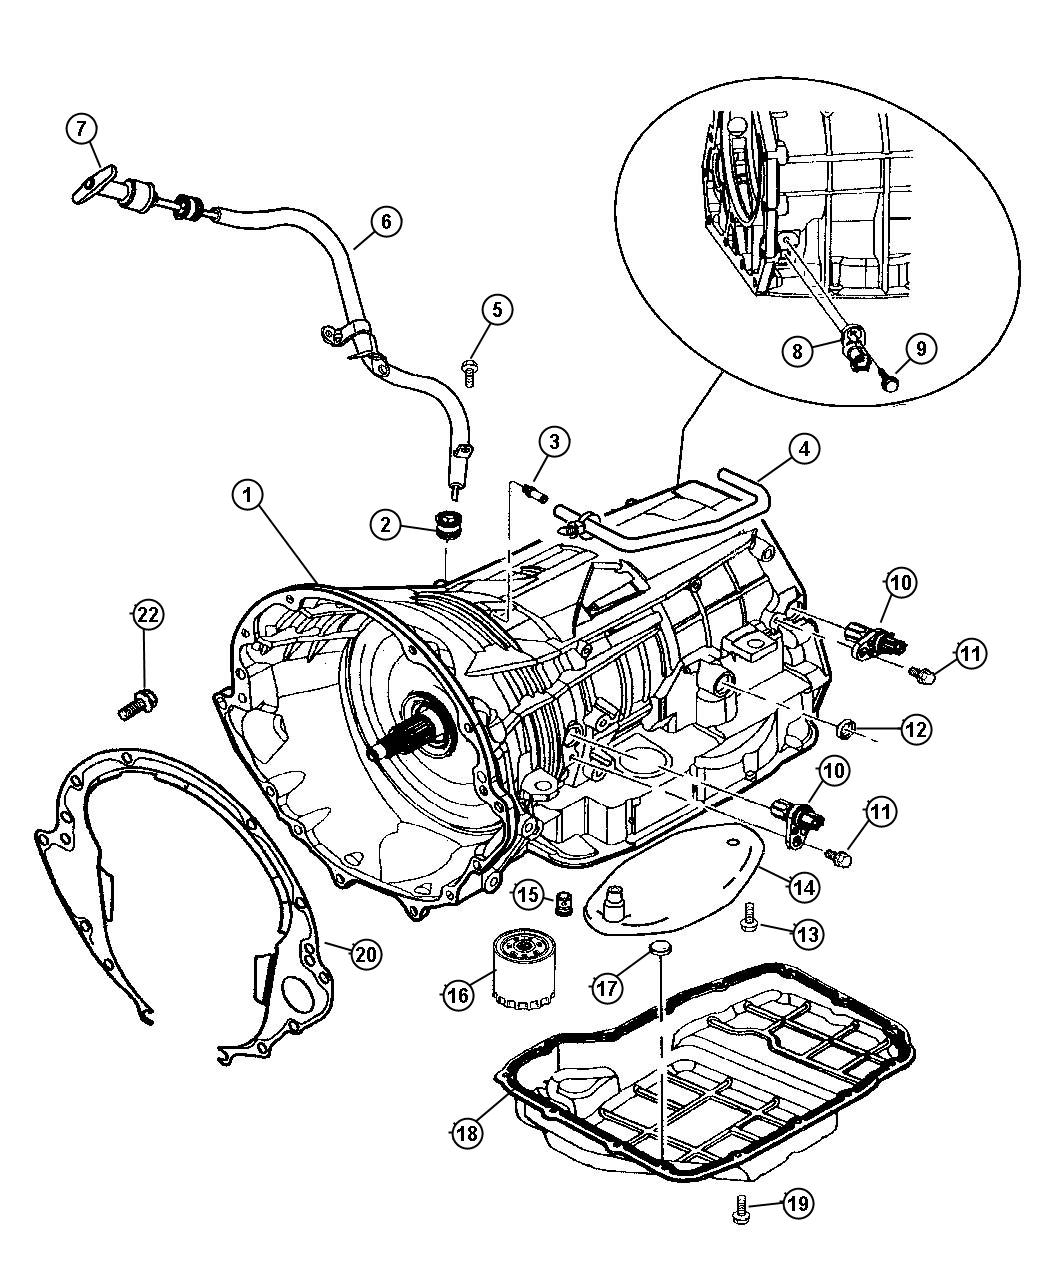 Dodge 46re Transmission Diagram